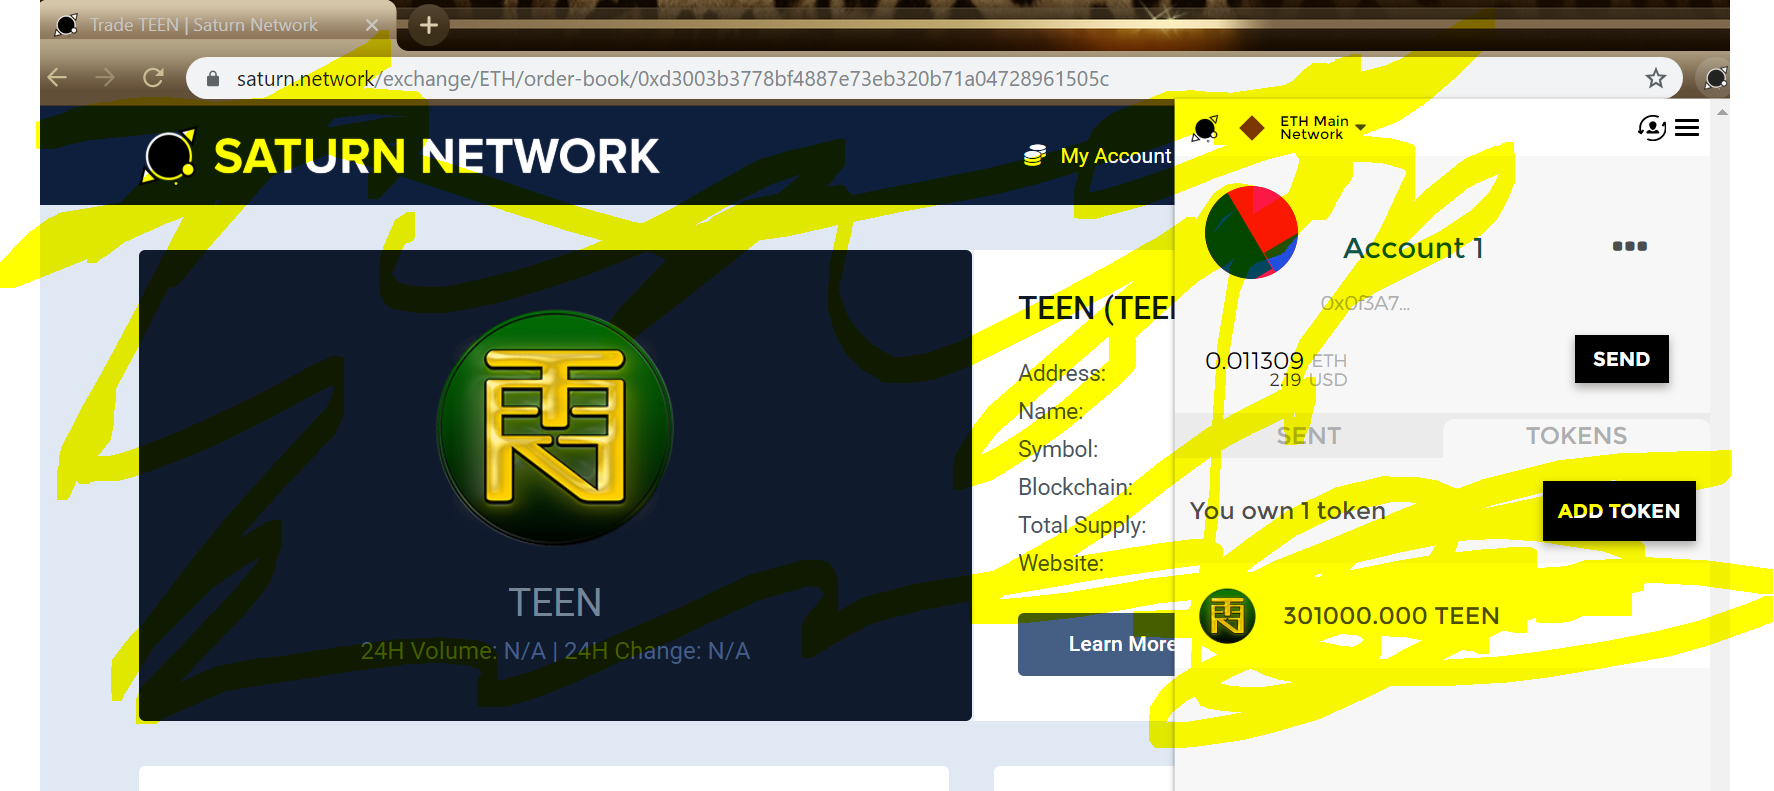 TEEN Coin turns one year old!